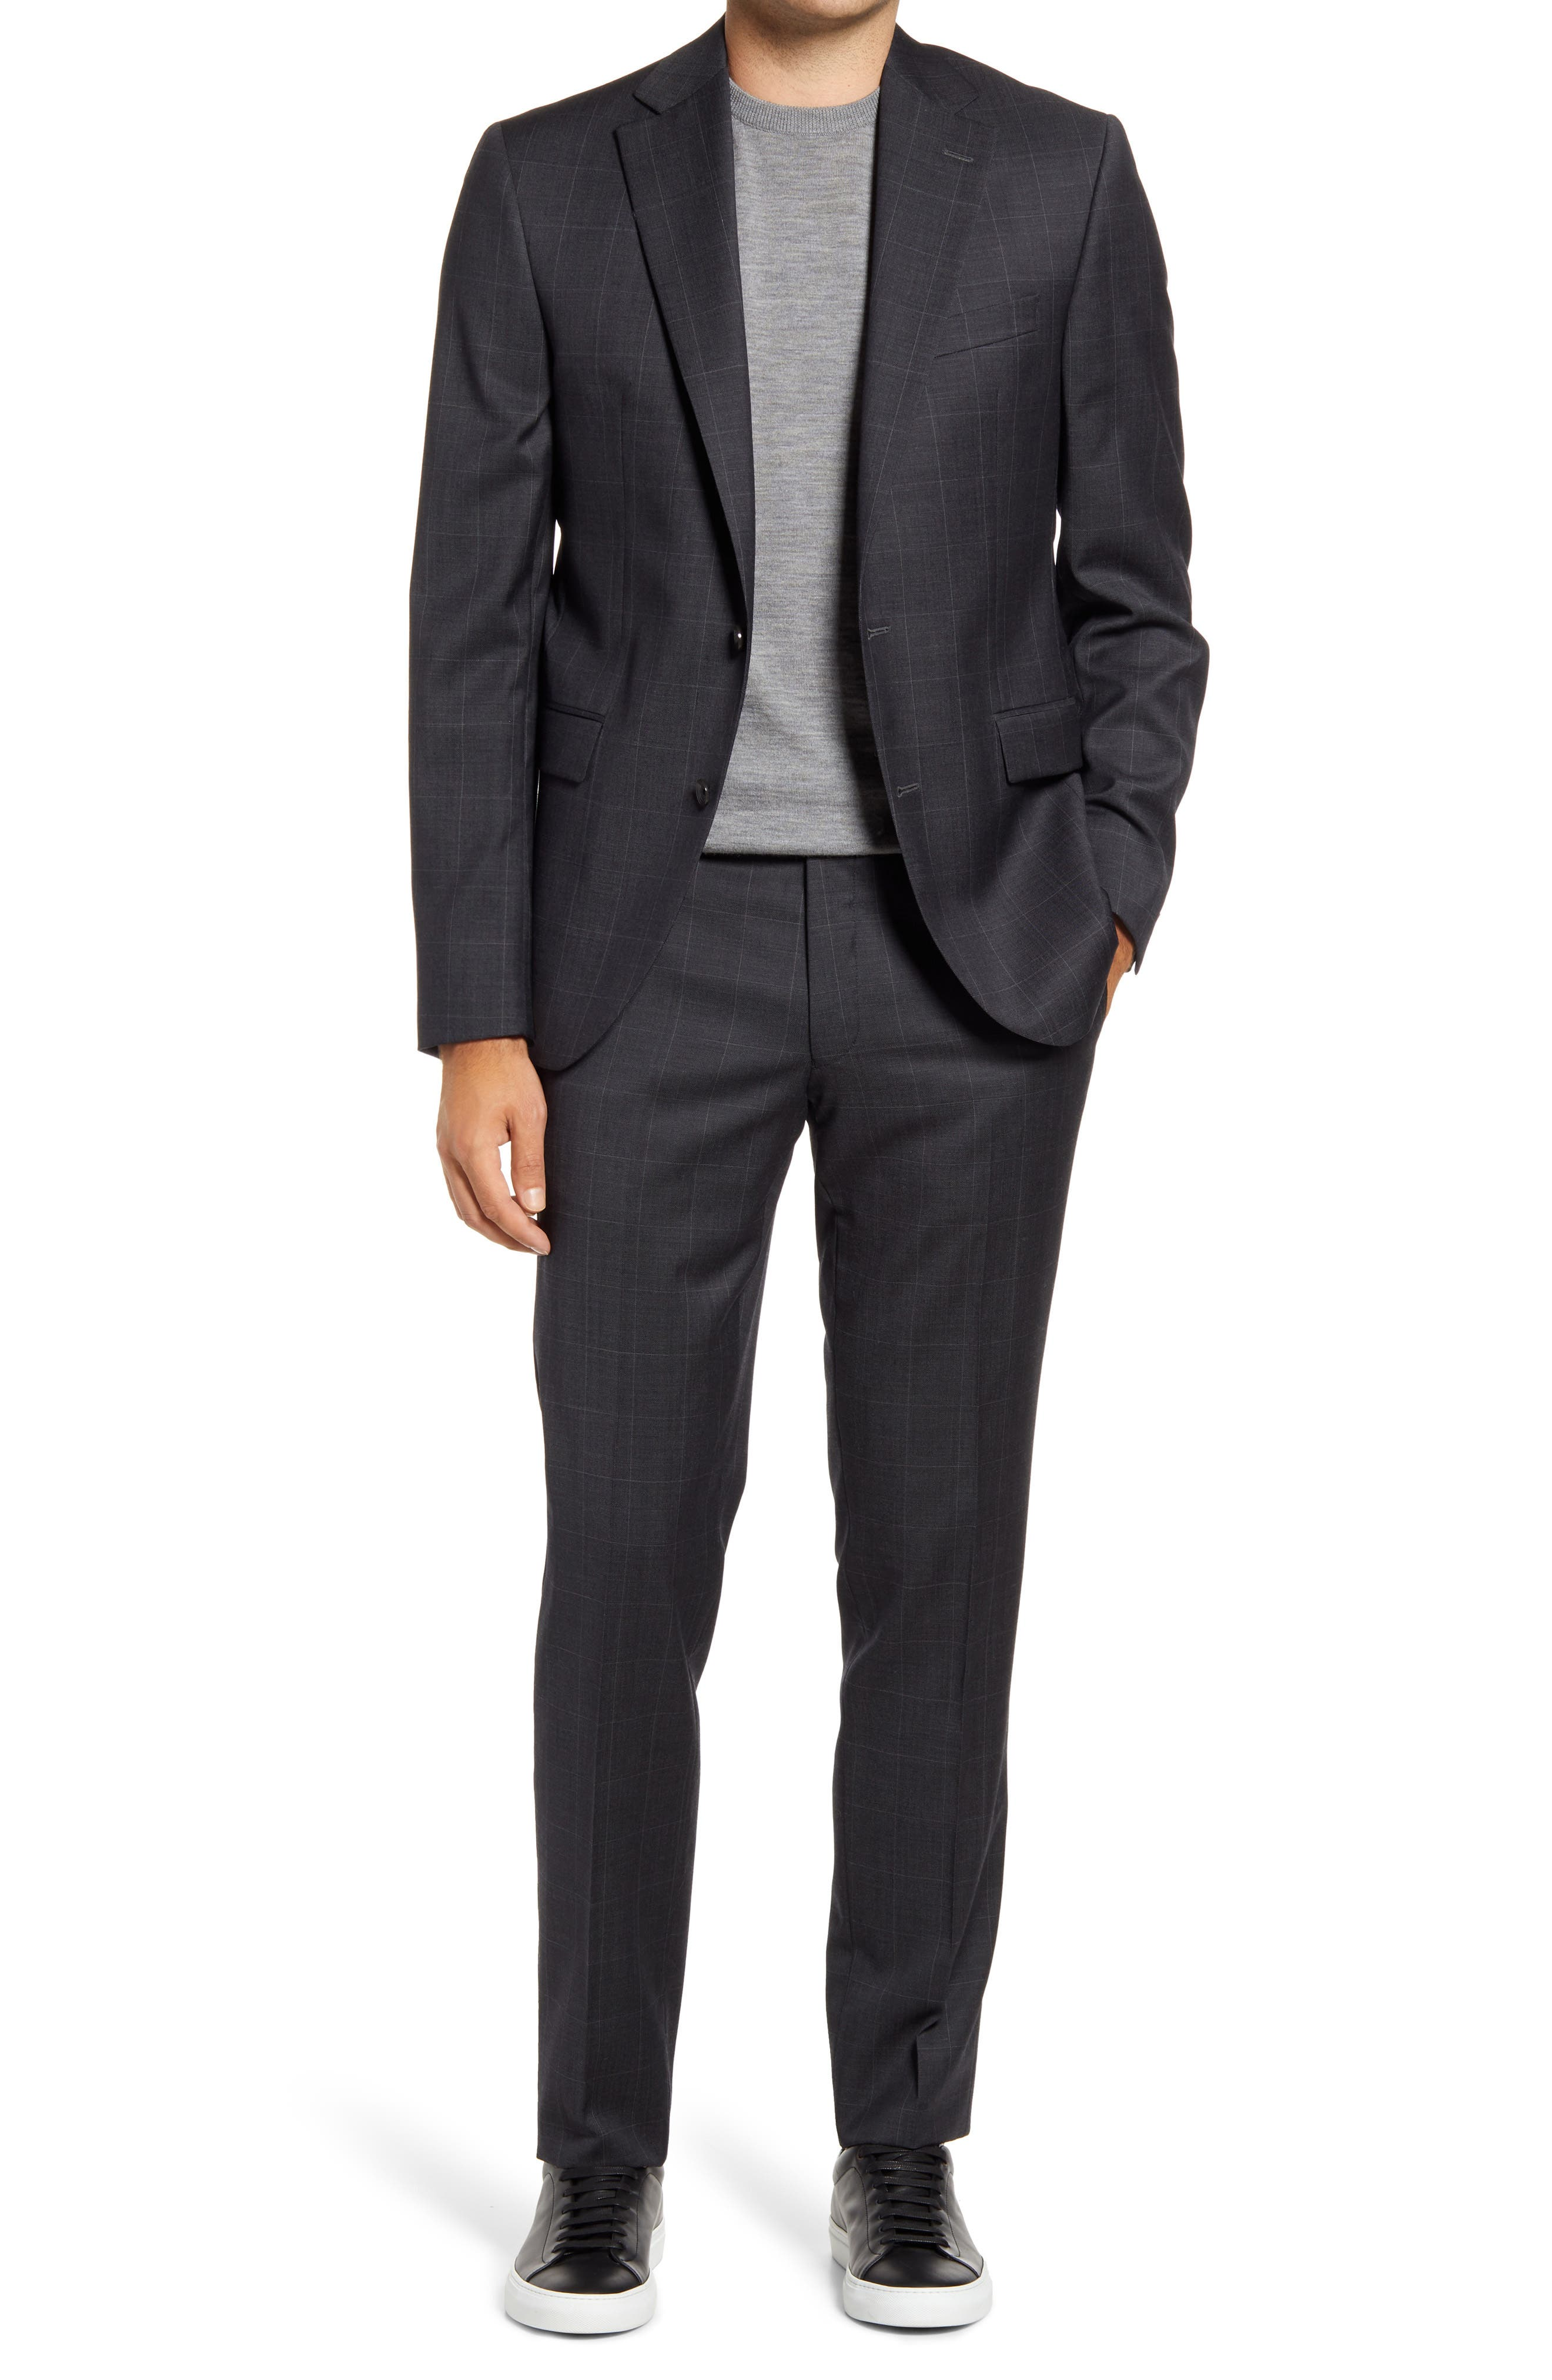 Esprit Contemporary Fit Grey Windowpane Check Wool Suit